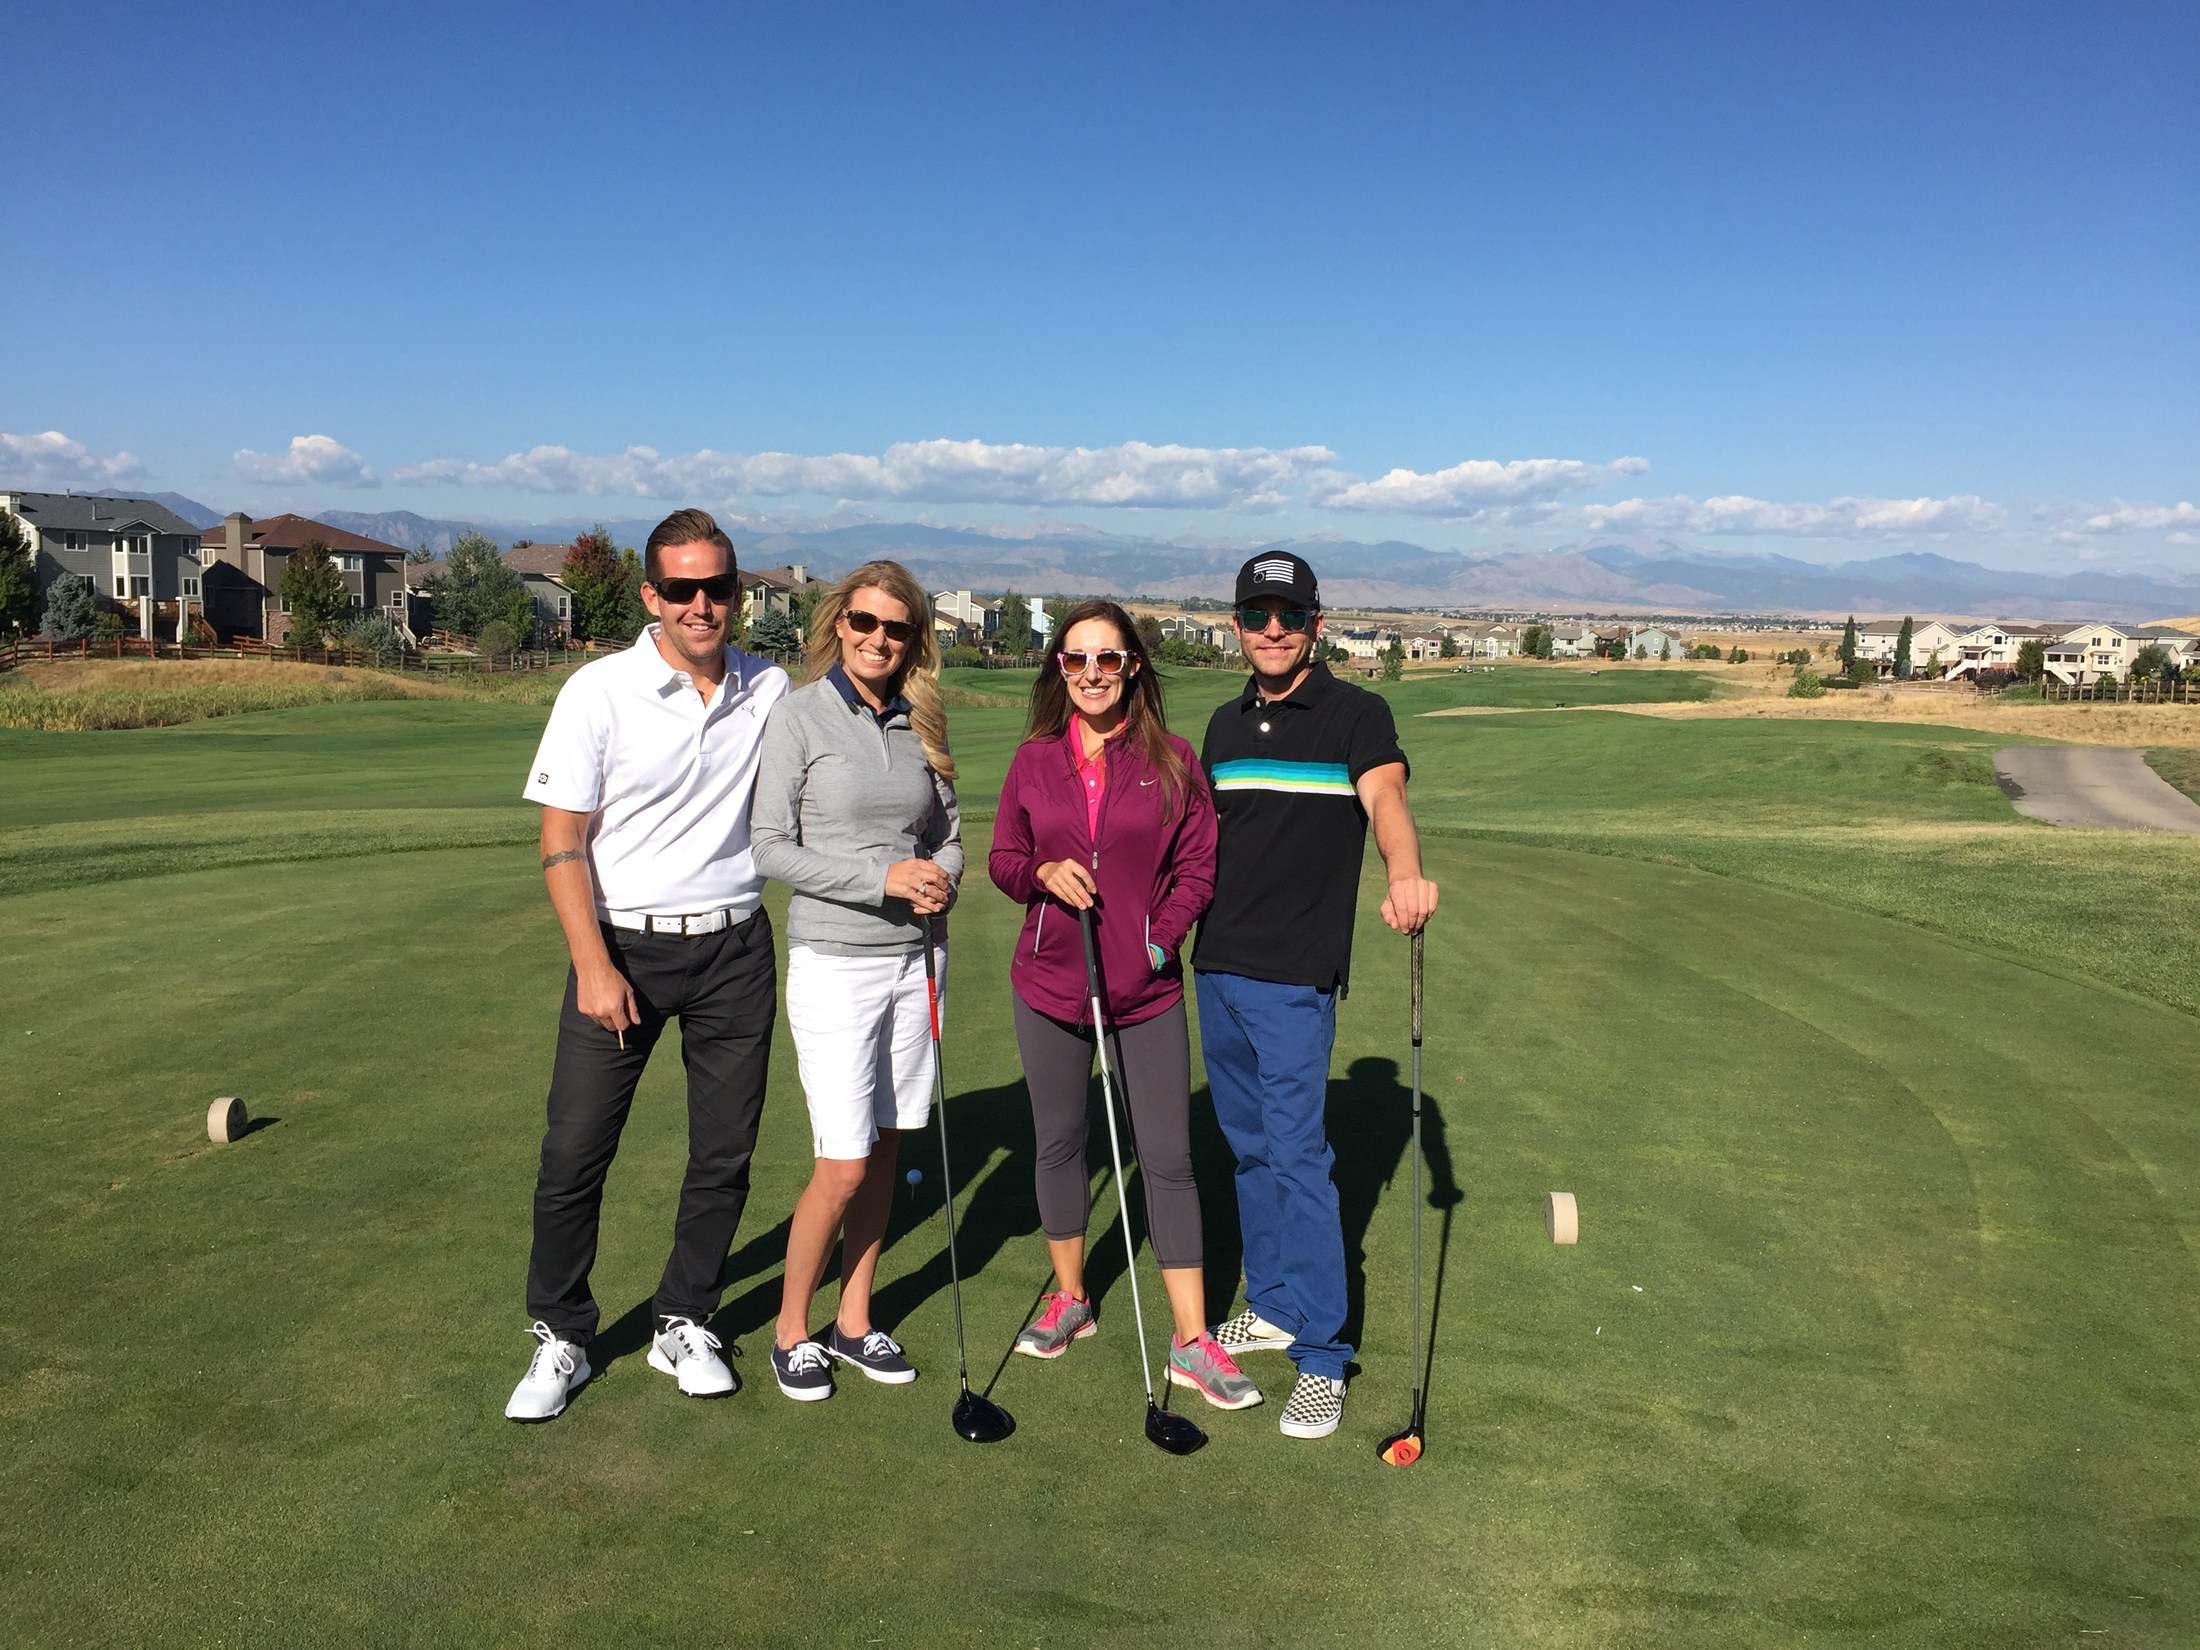 PRA Family in Colorado National Golf Course